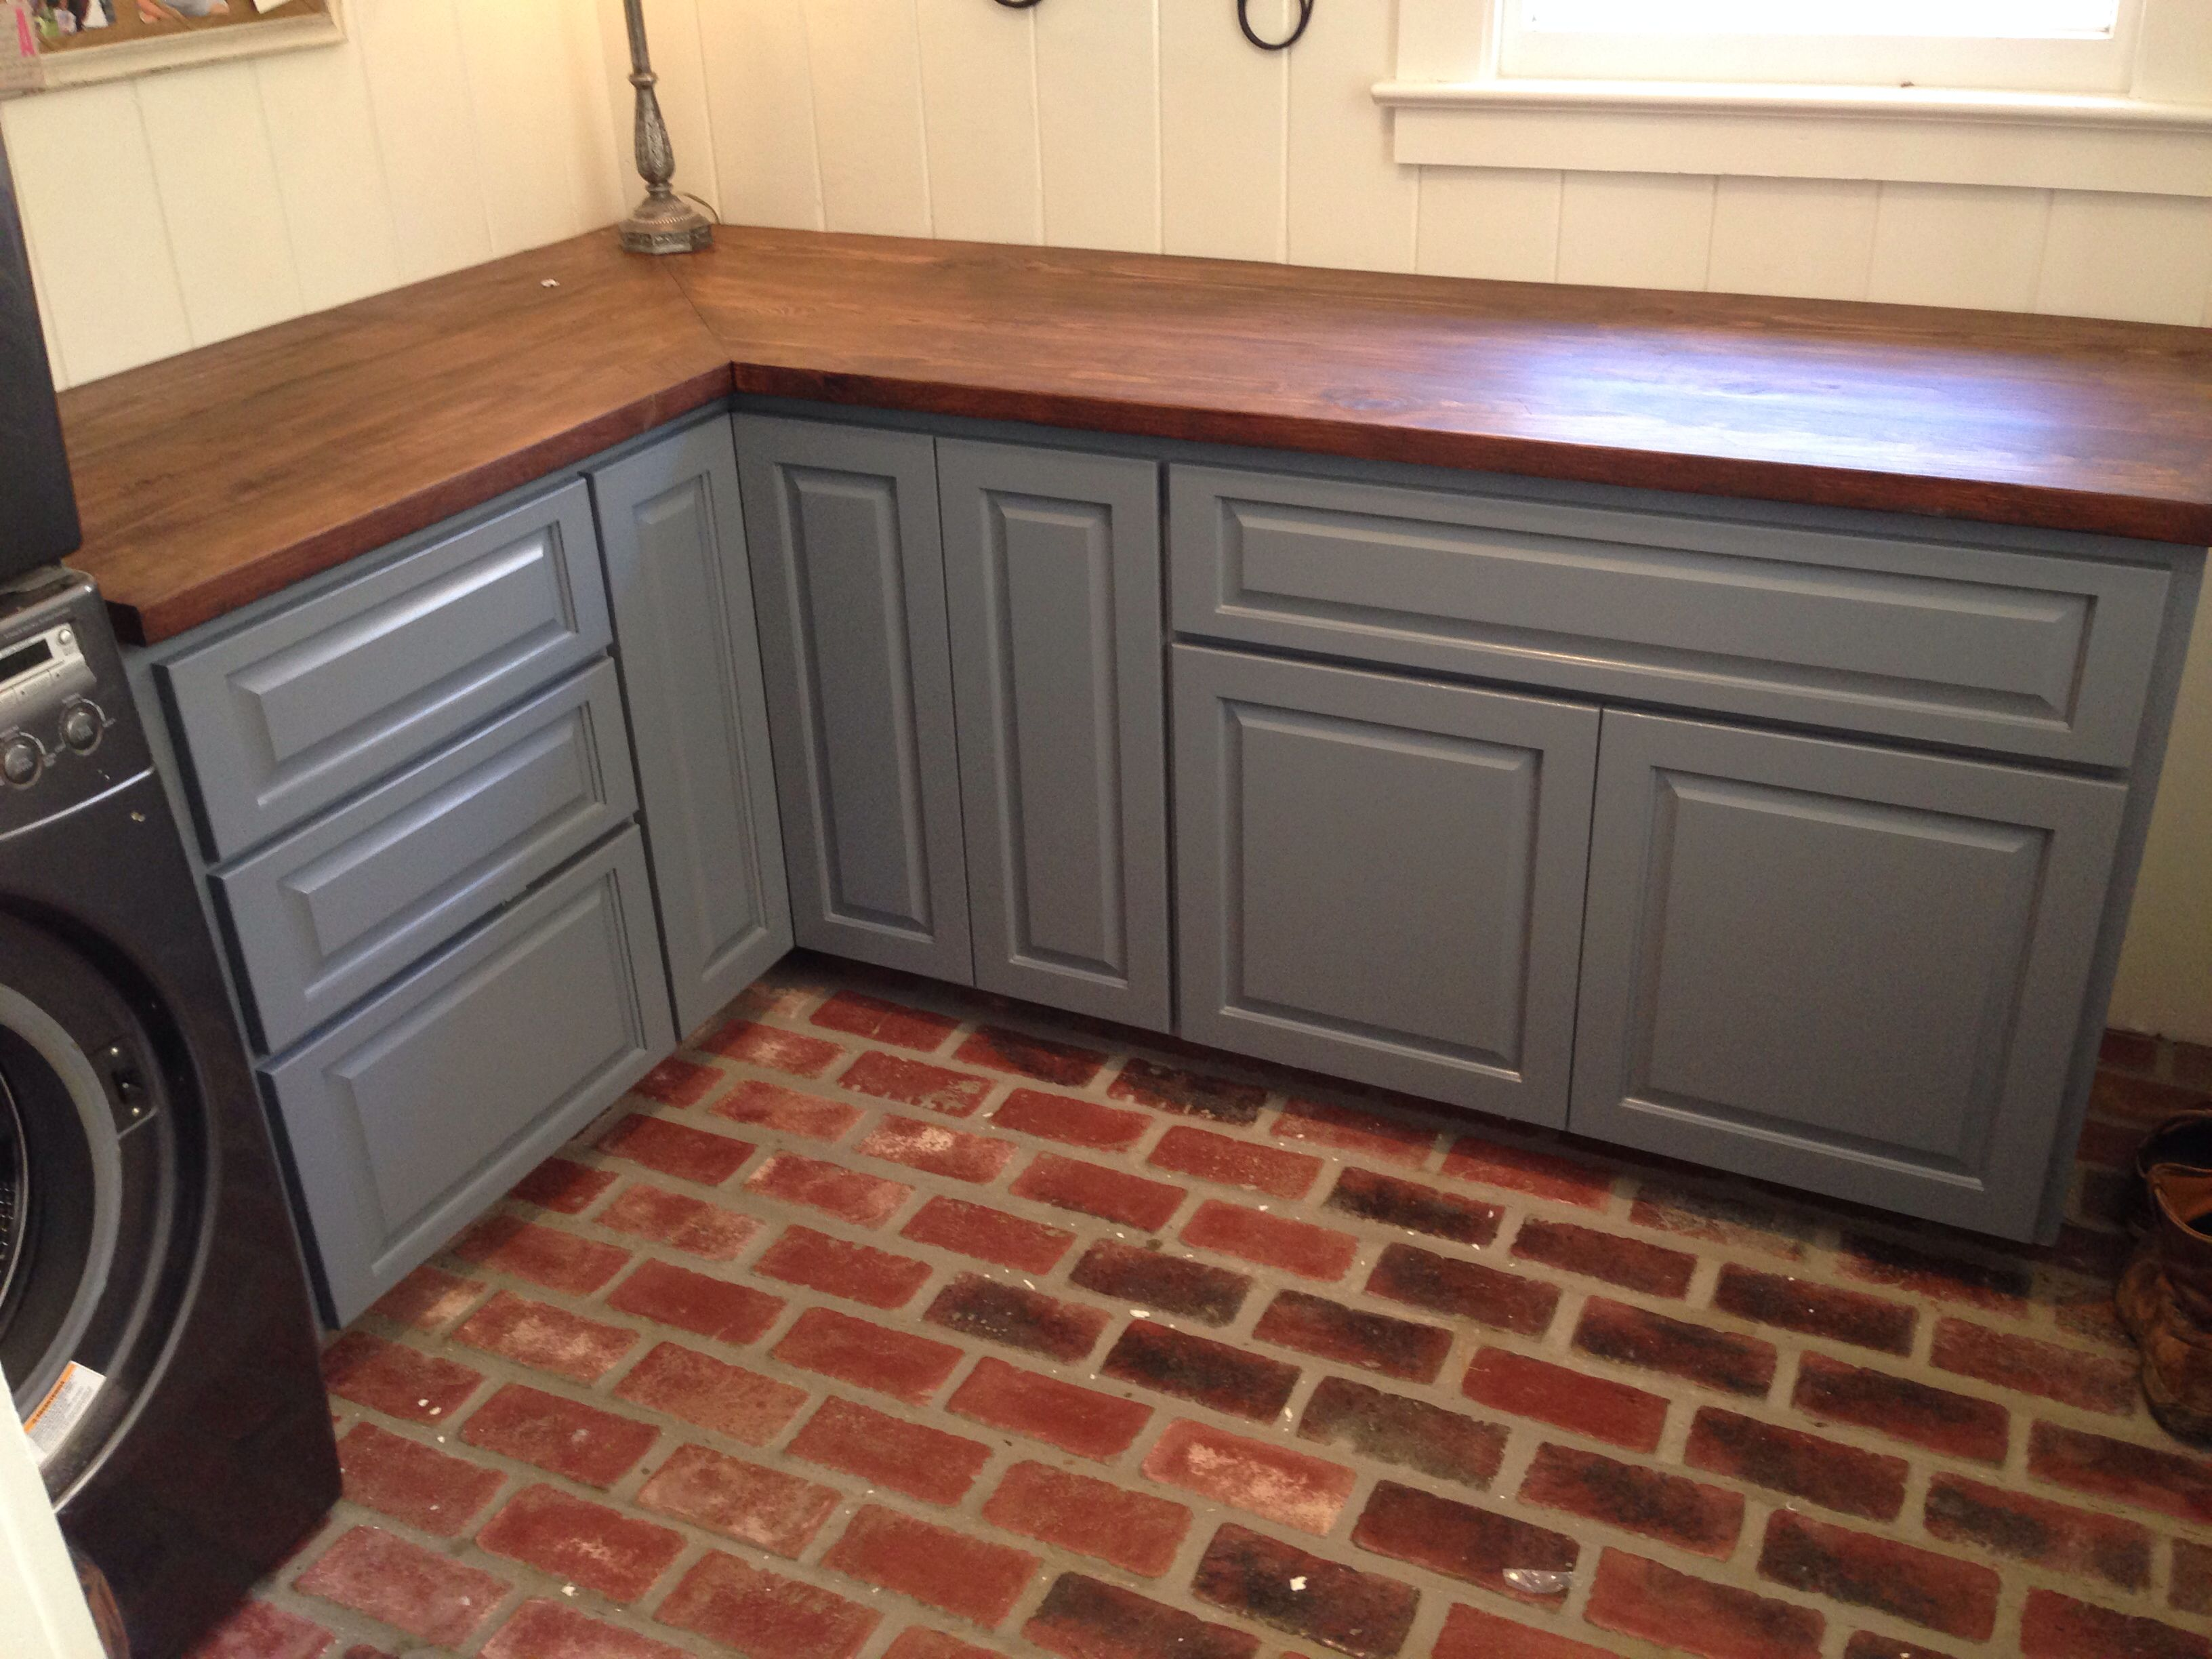 Laundry Room Brick Floor Stained Wood Countertop And Blue